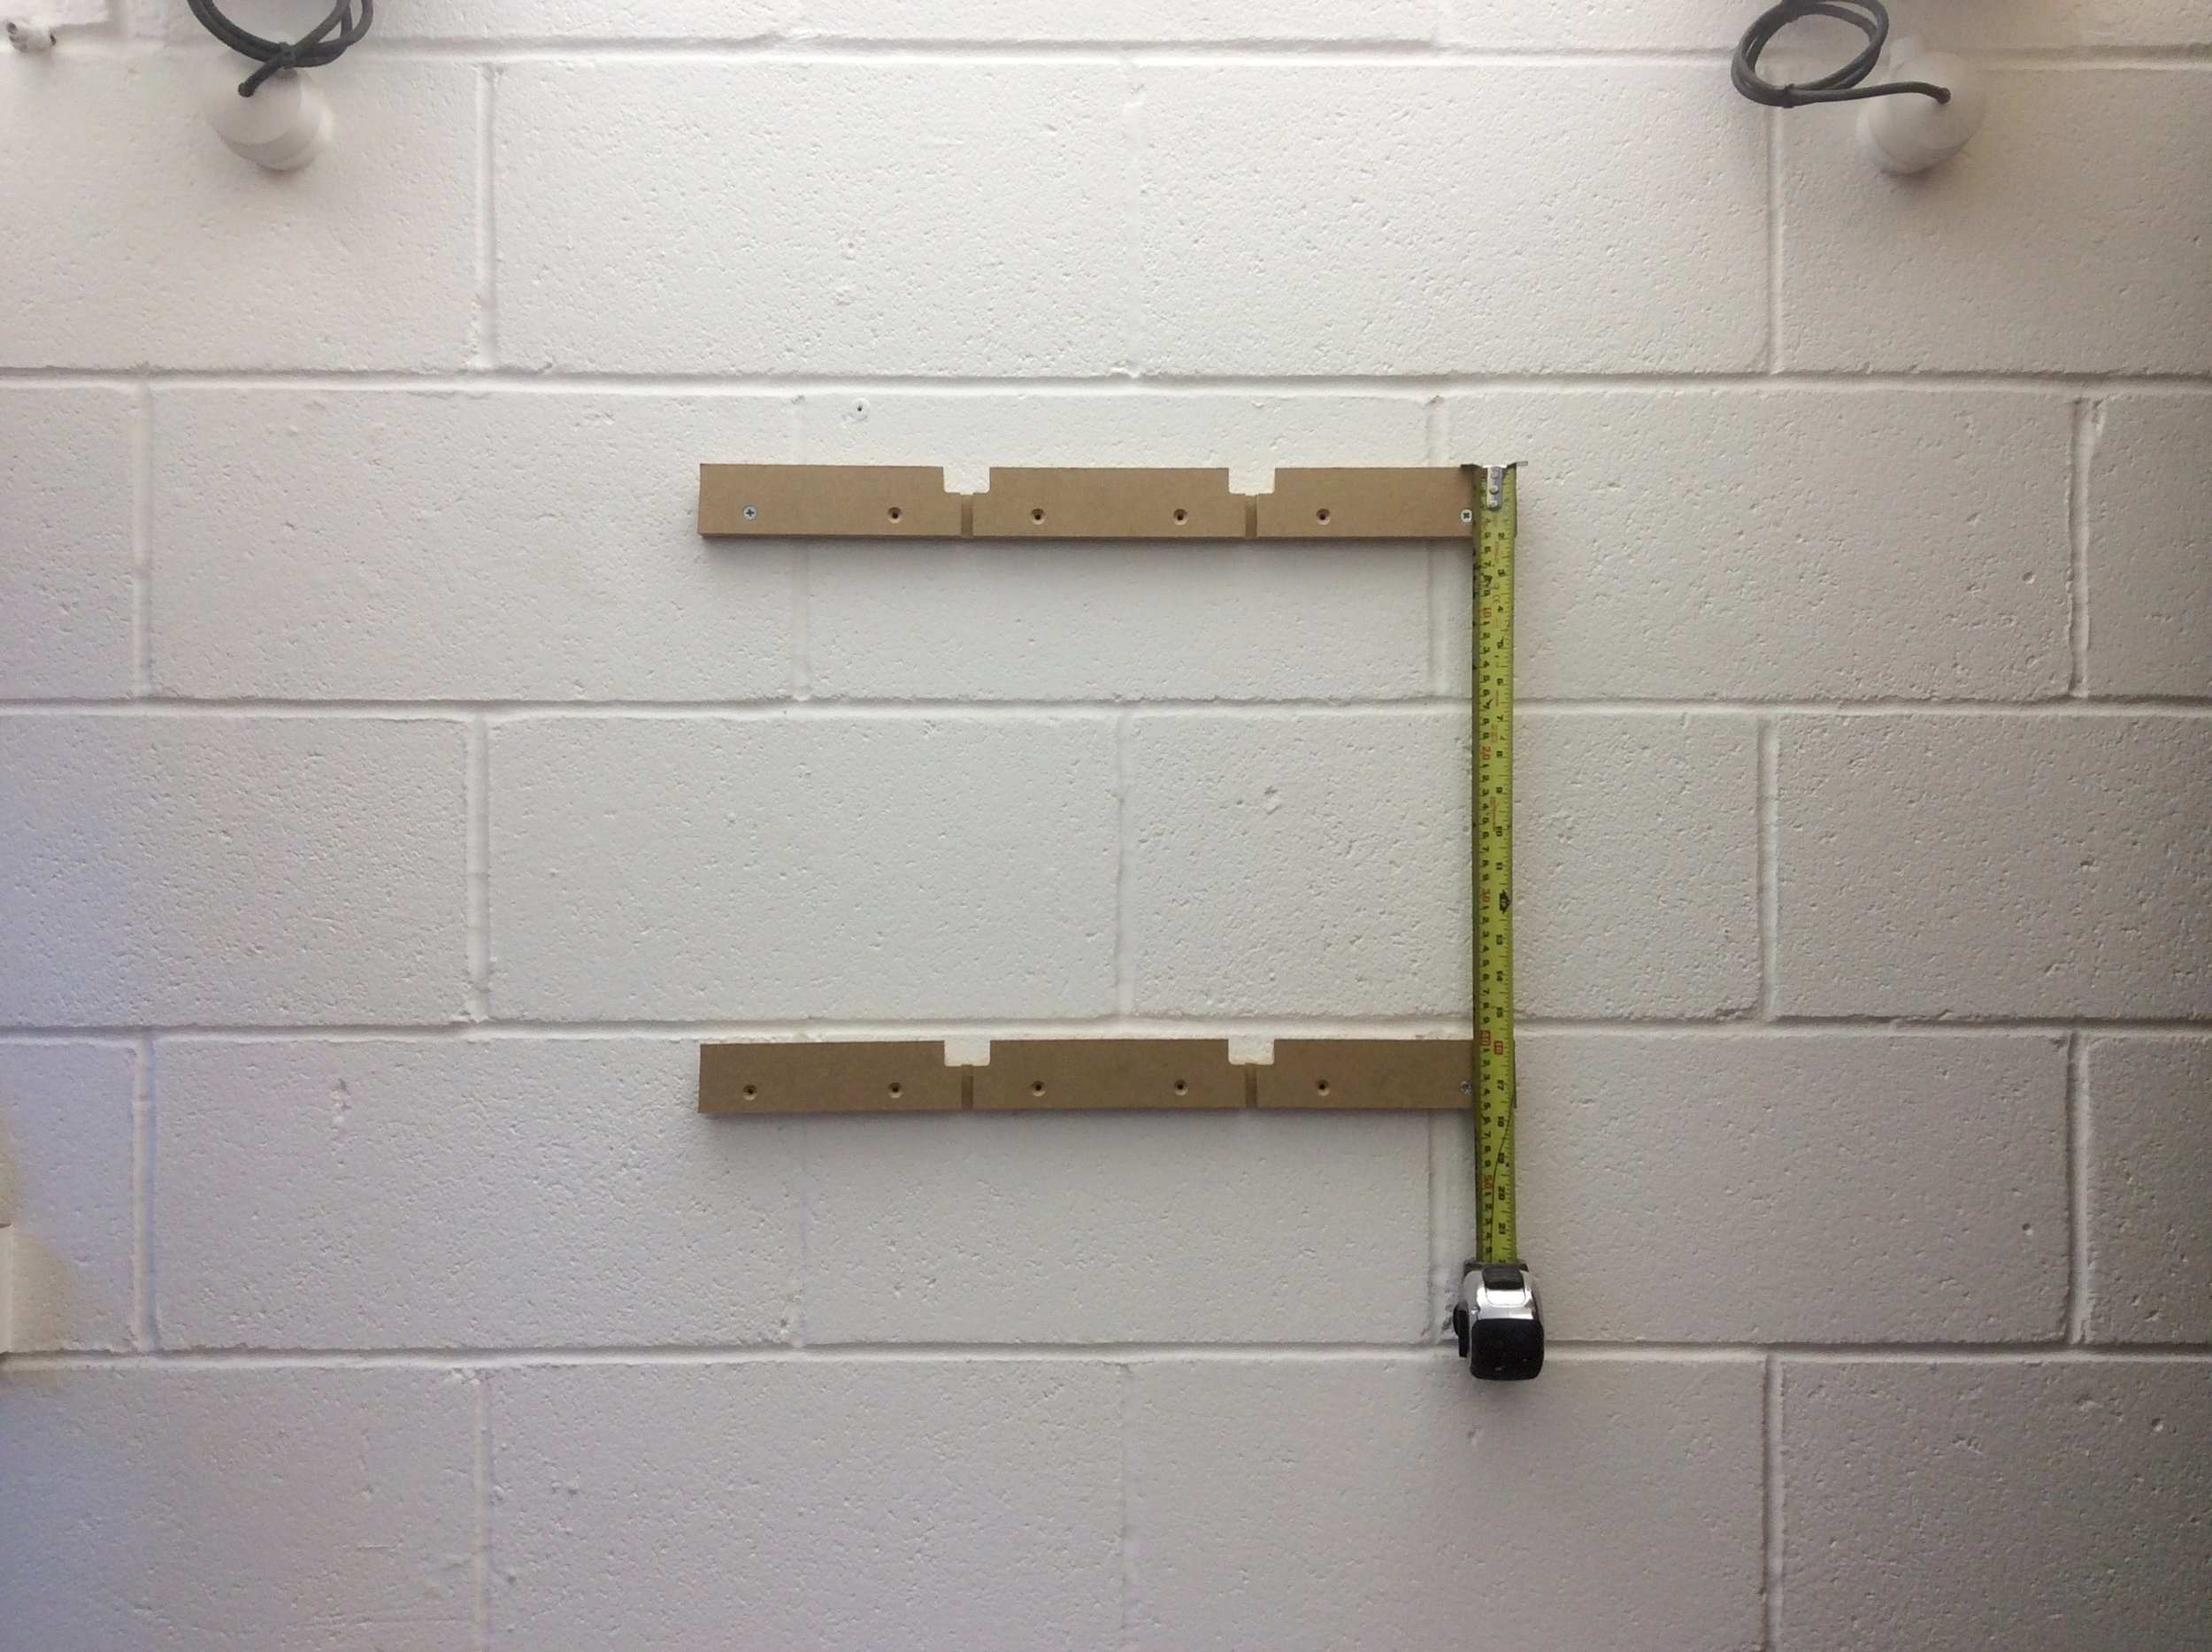 Set out next baton below, pilot hole first fix & then install first fixing then repeat for second fixing